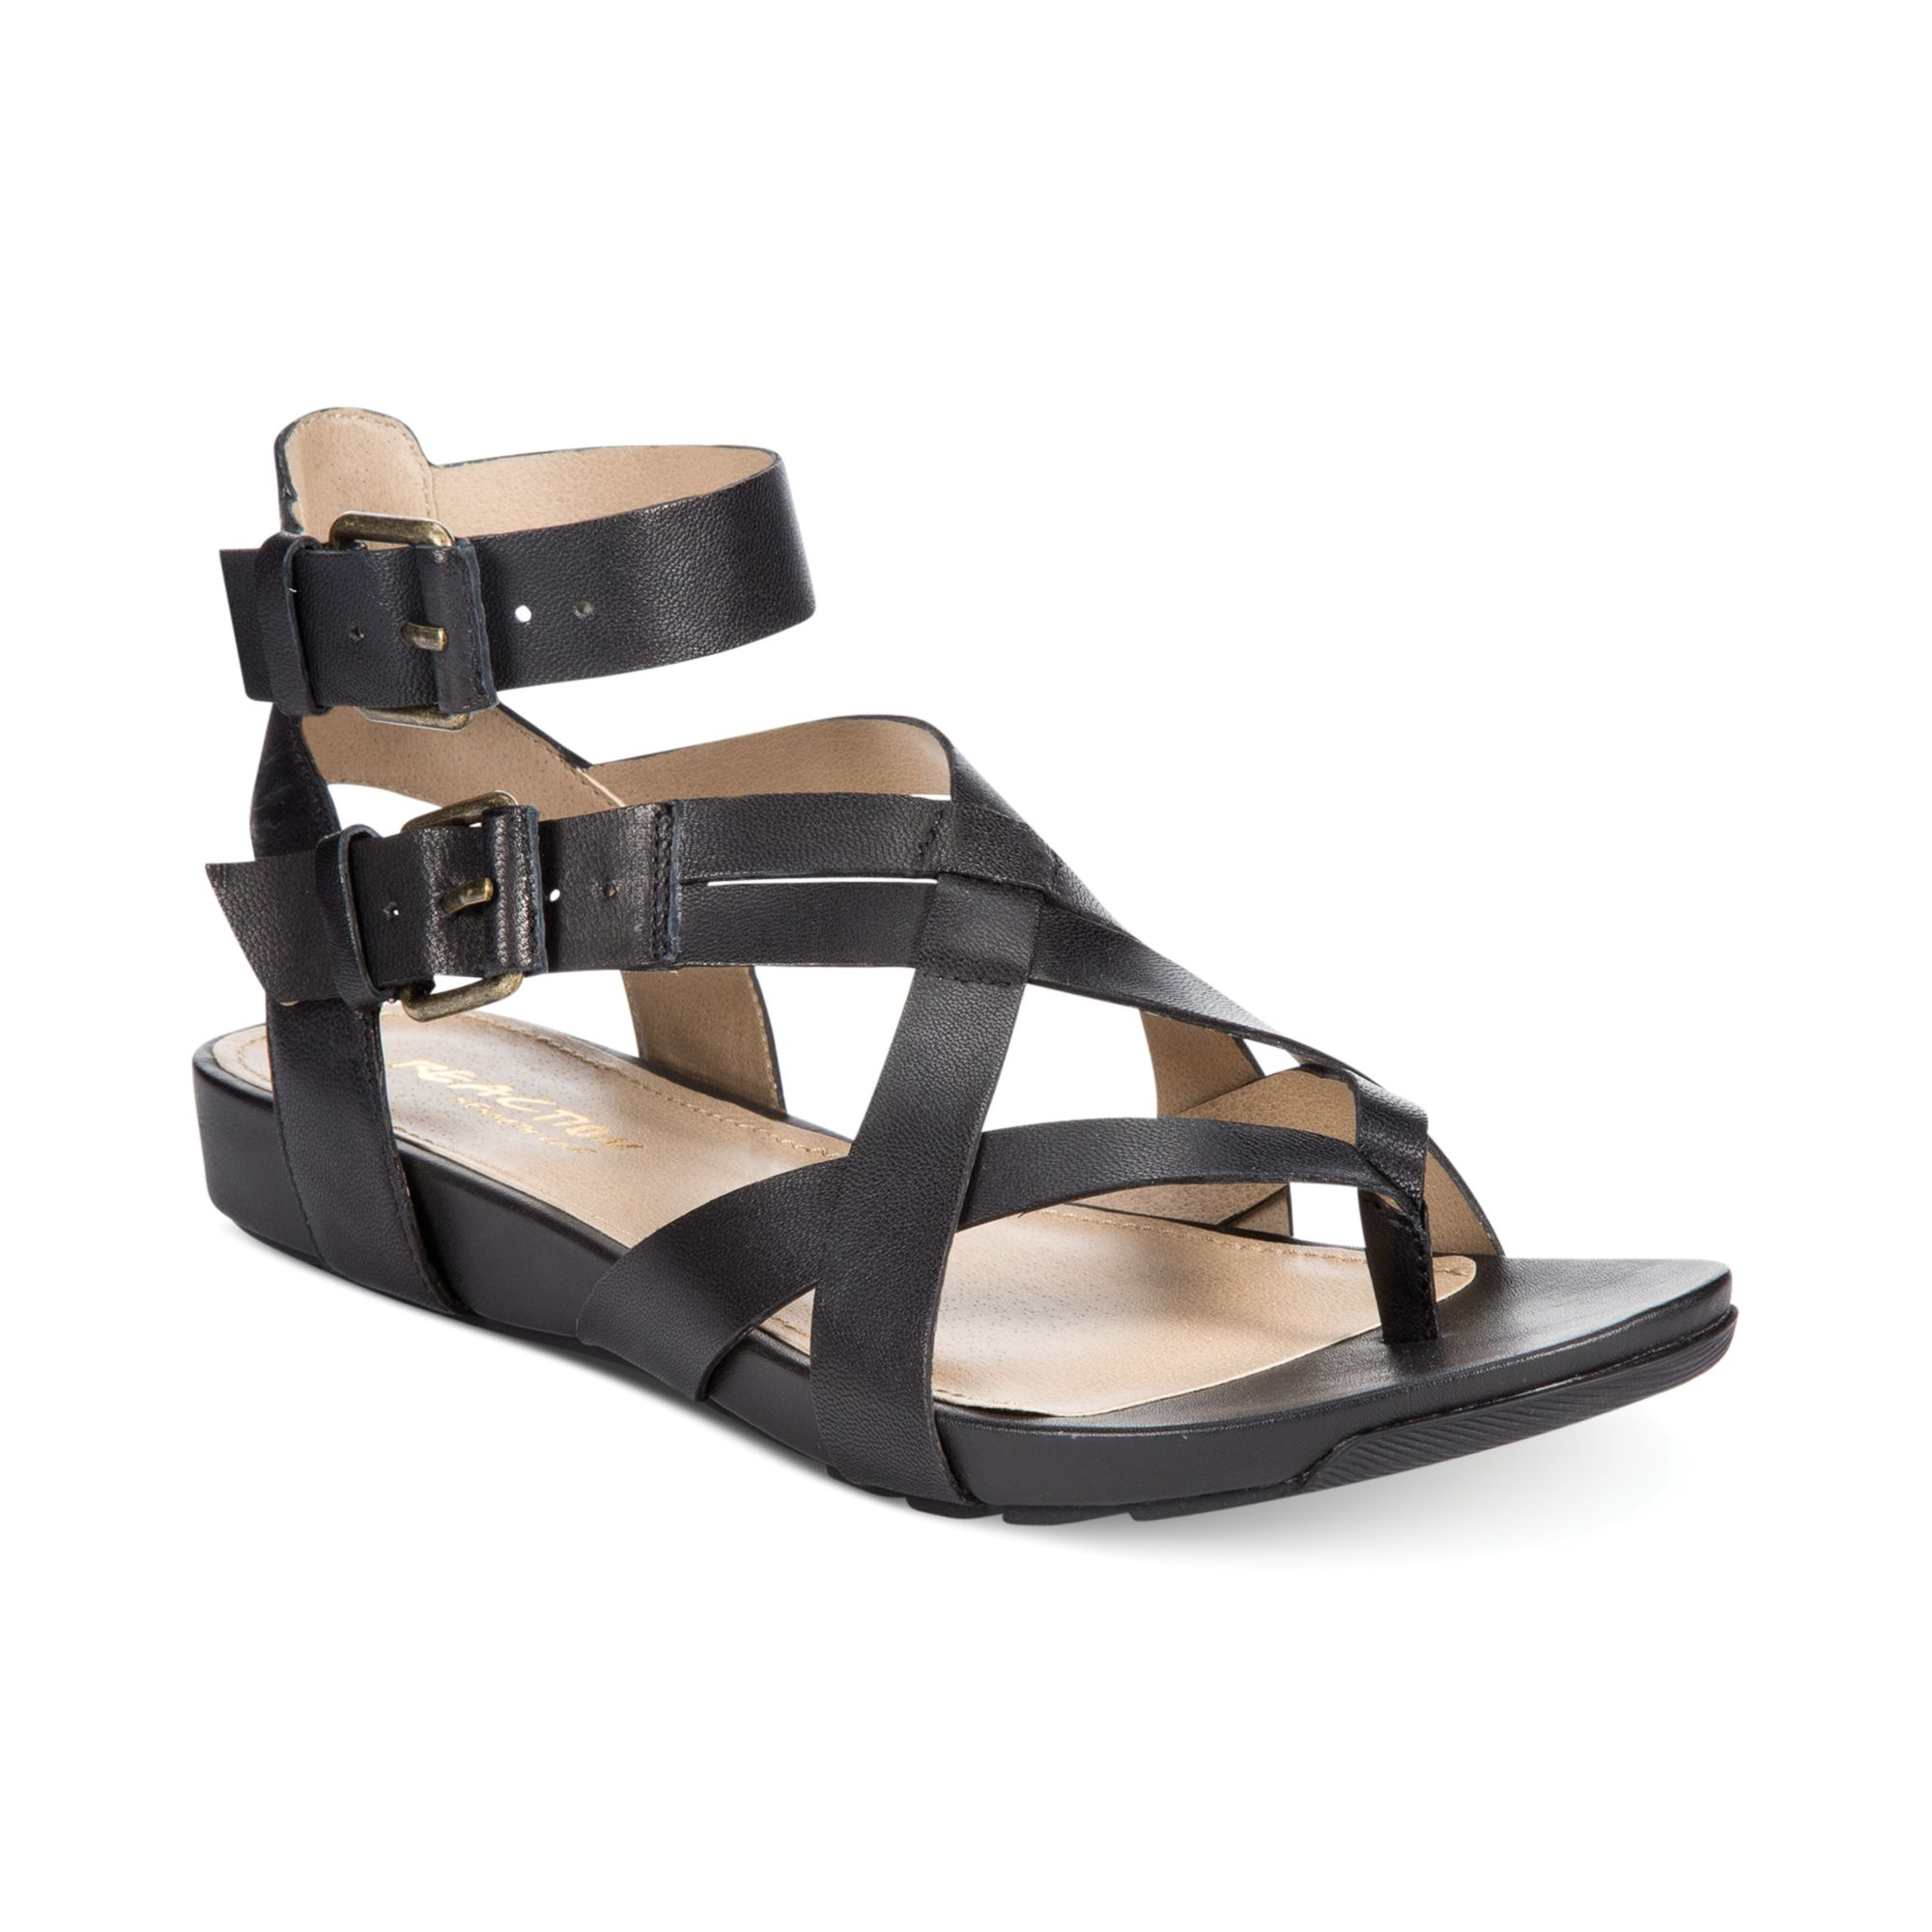 Kenneth Cole Reaction Women S Shoes Wedges